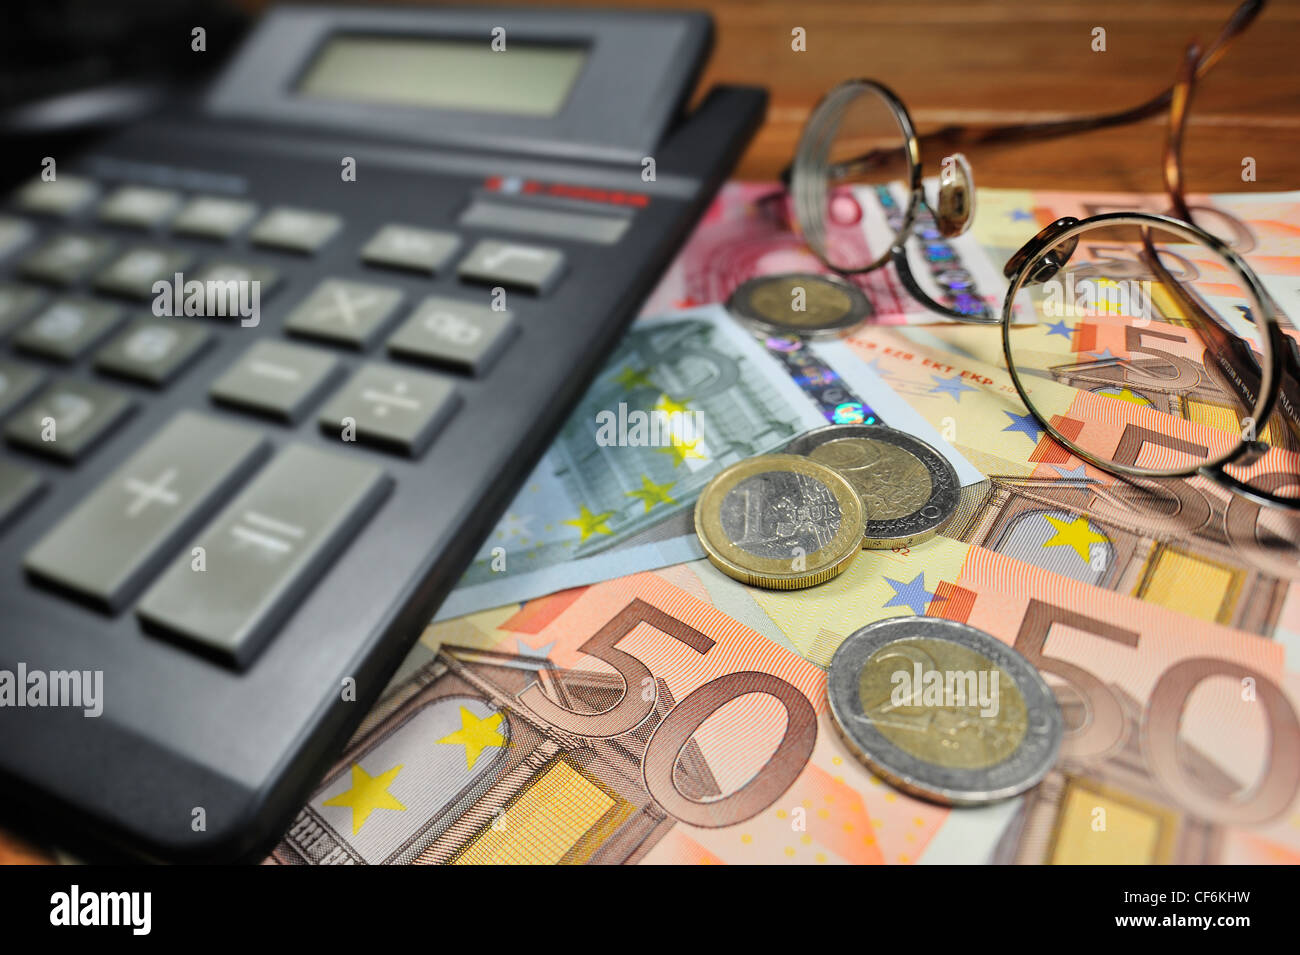 Conceptual image with banknotes and coins in euro currency and calculator to illustrate bank crisis in European - Stock Image